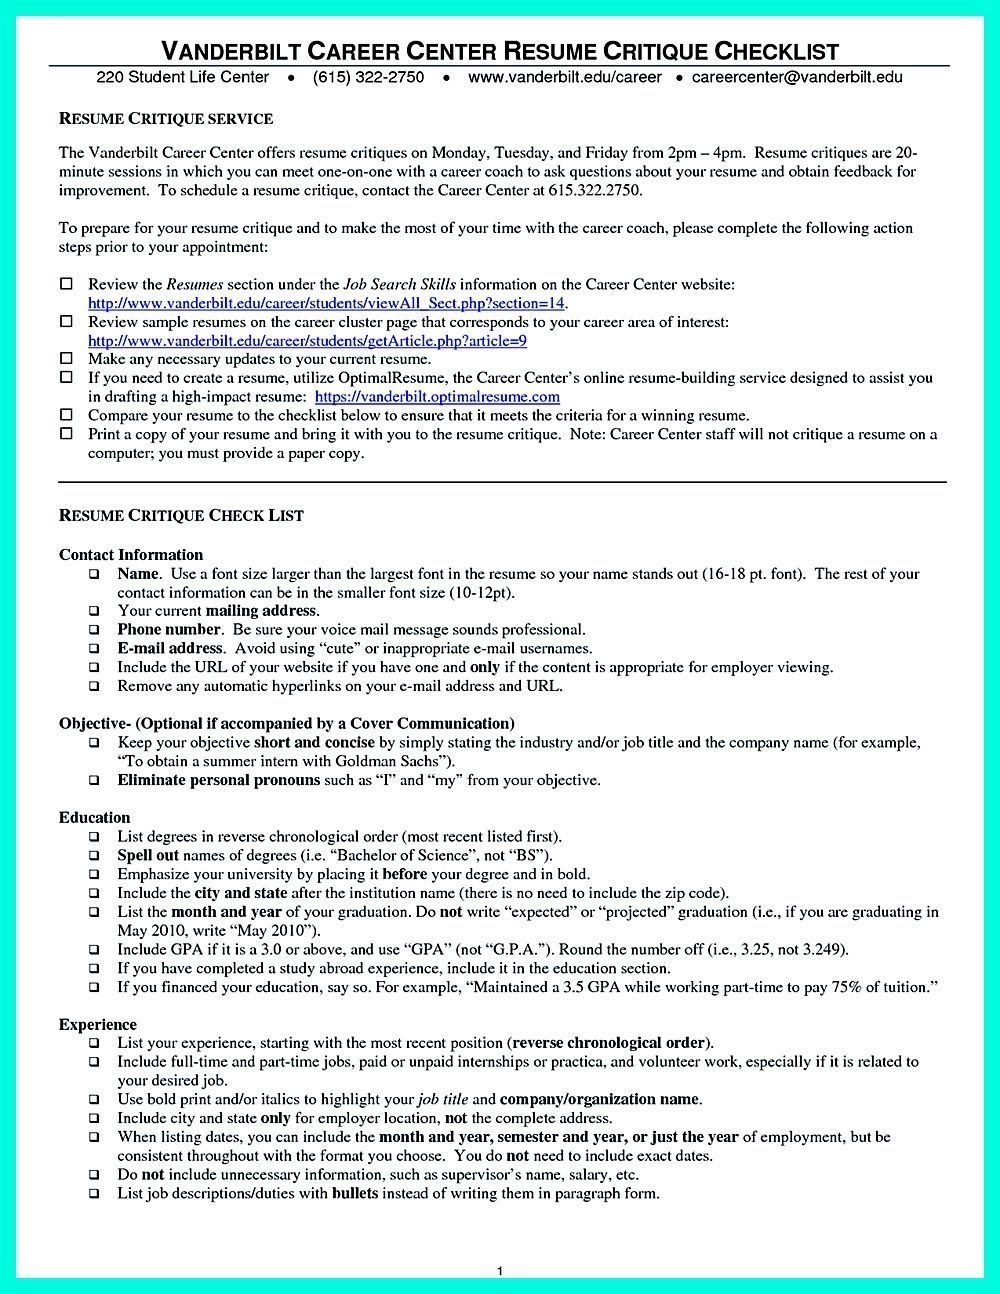 college student resume can be really challenging as this can be the first resume you make